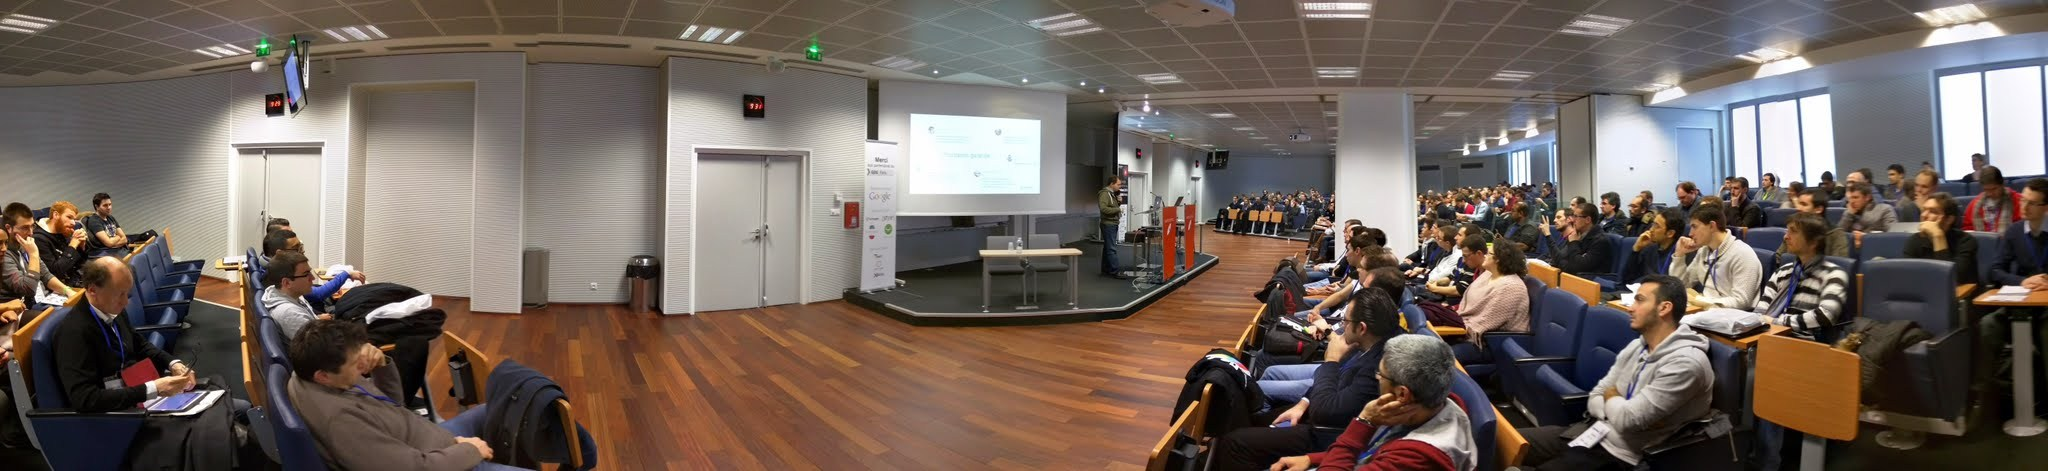 GDG DevFest 2015 : Google Glass, Material Design, jeux en ligne et machine learning